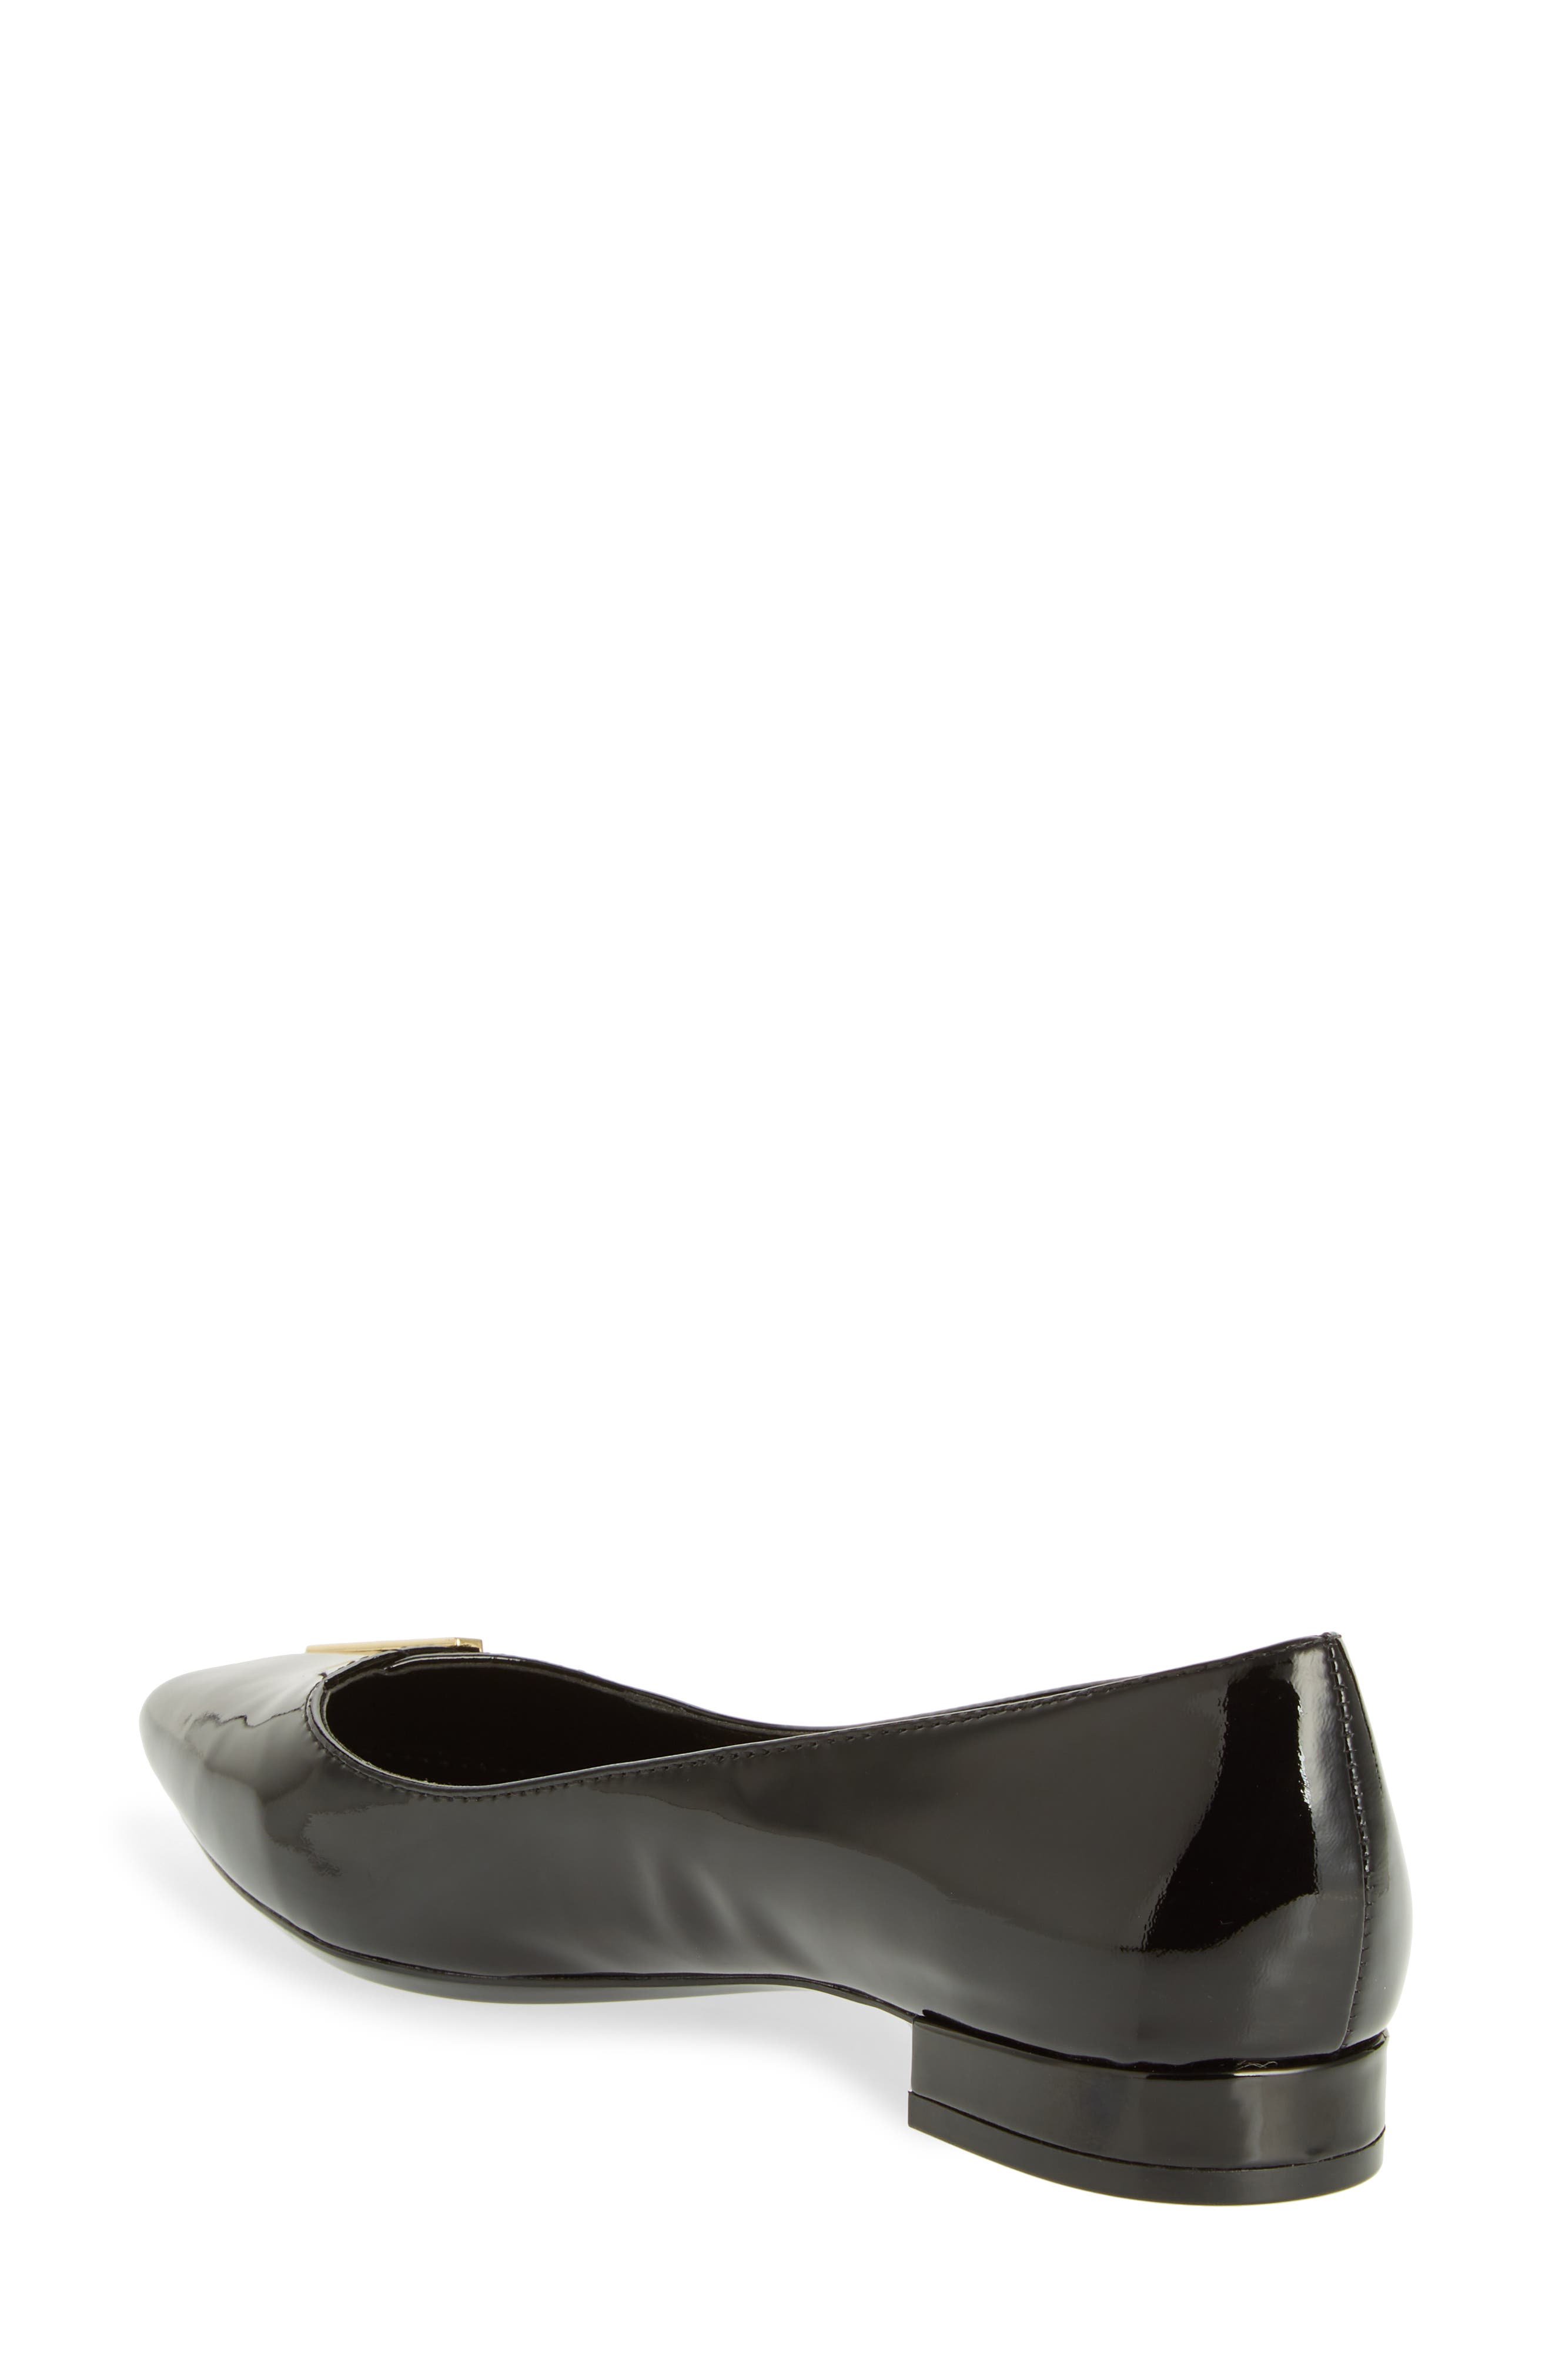 Arline Pointy Toe Flat,                             Alternate thumbnail 2, color,                             BLACK PATENT LEATHER